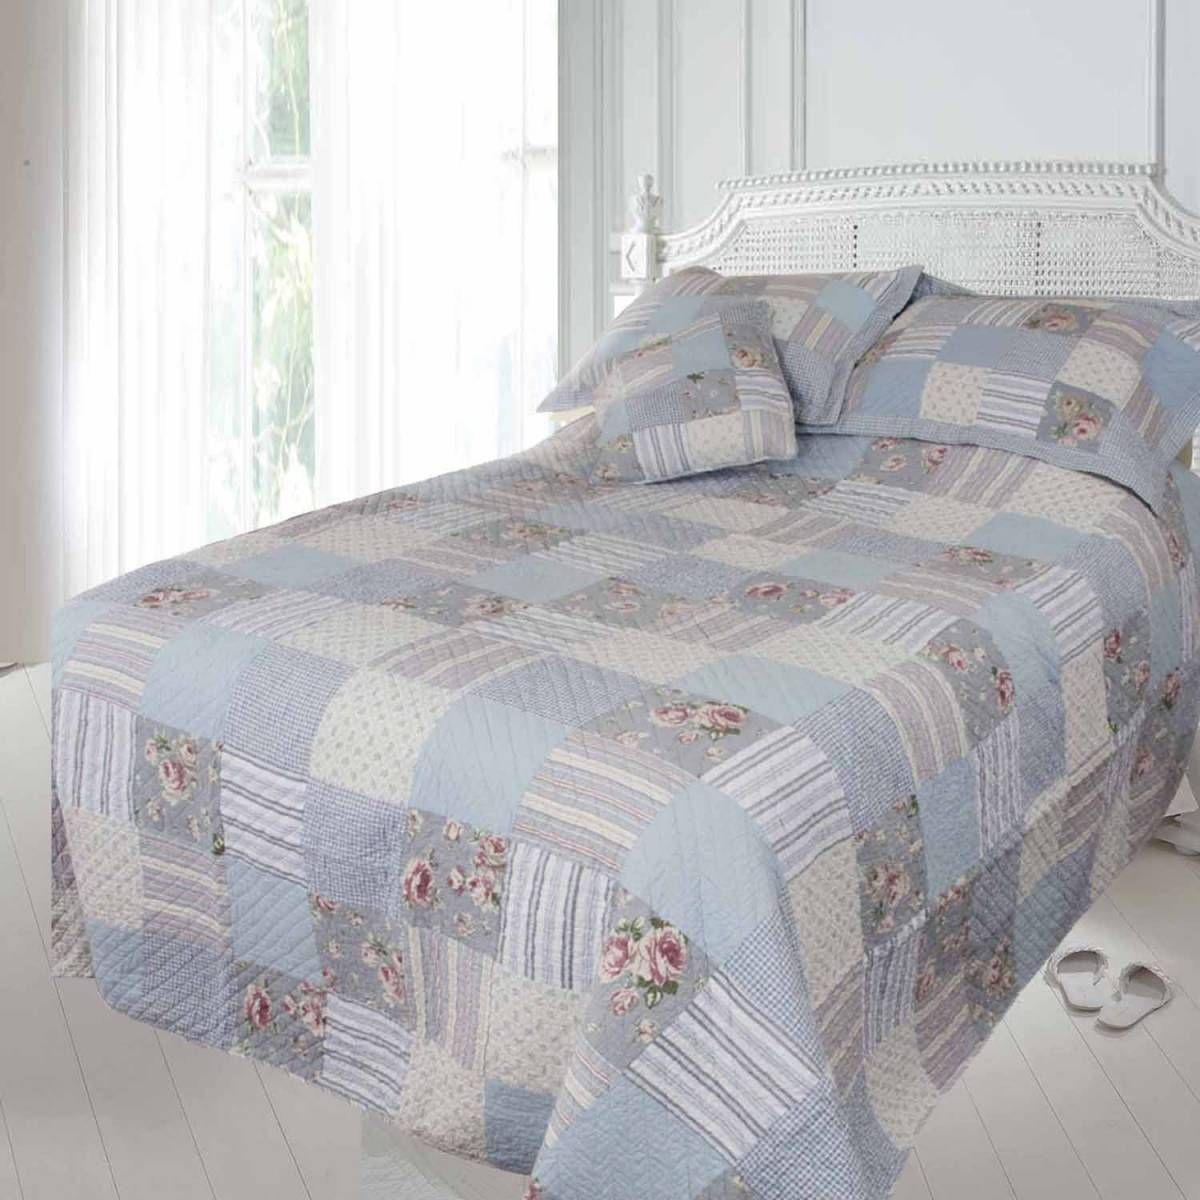 Blue Patchwork Quilt | Eiderdown design ideas | Pinterest ... : patchwork comforters throws and quilts - Adamdwight.com